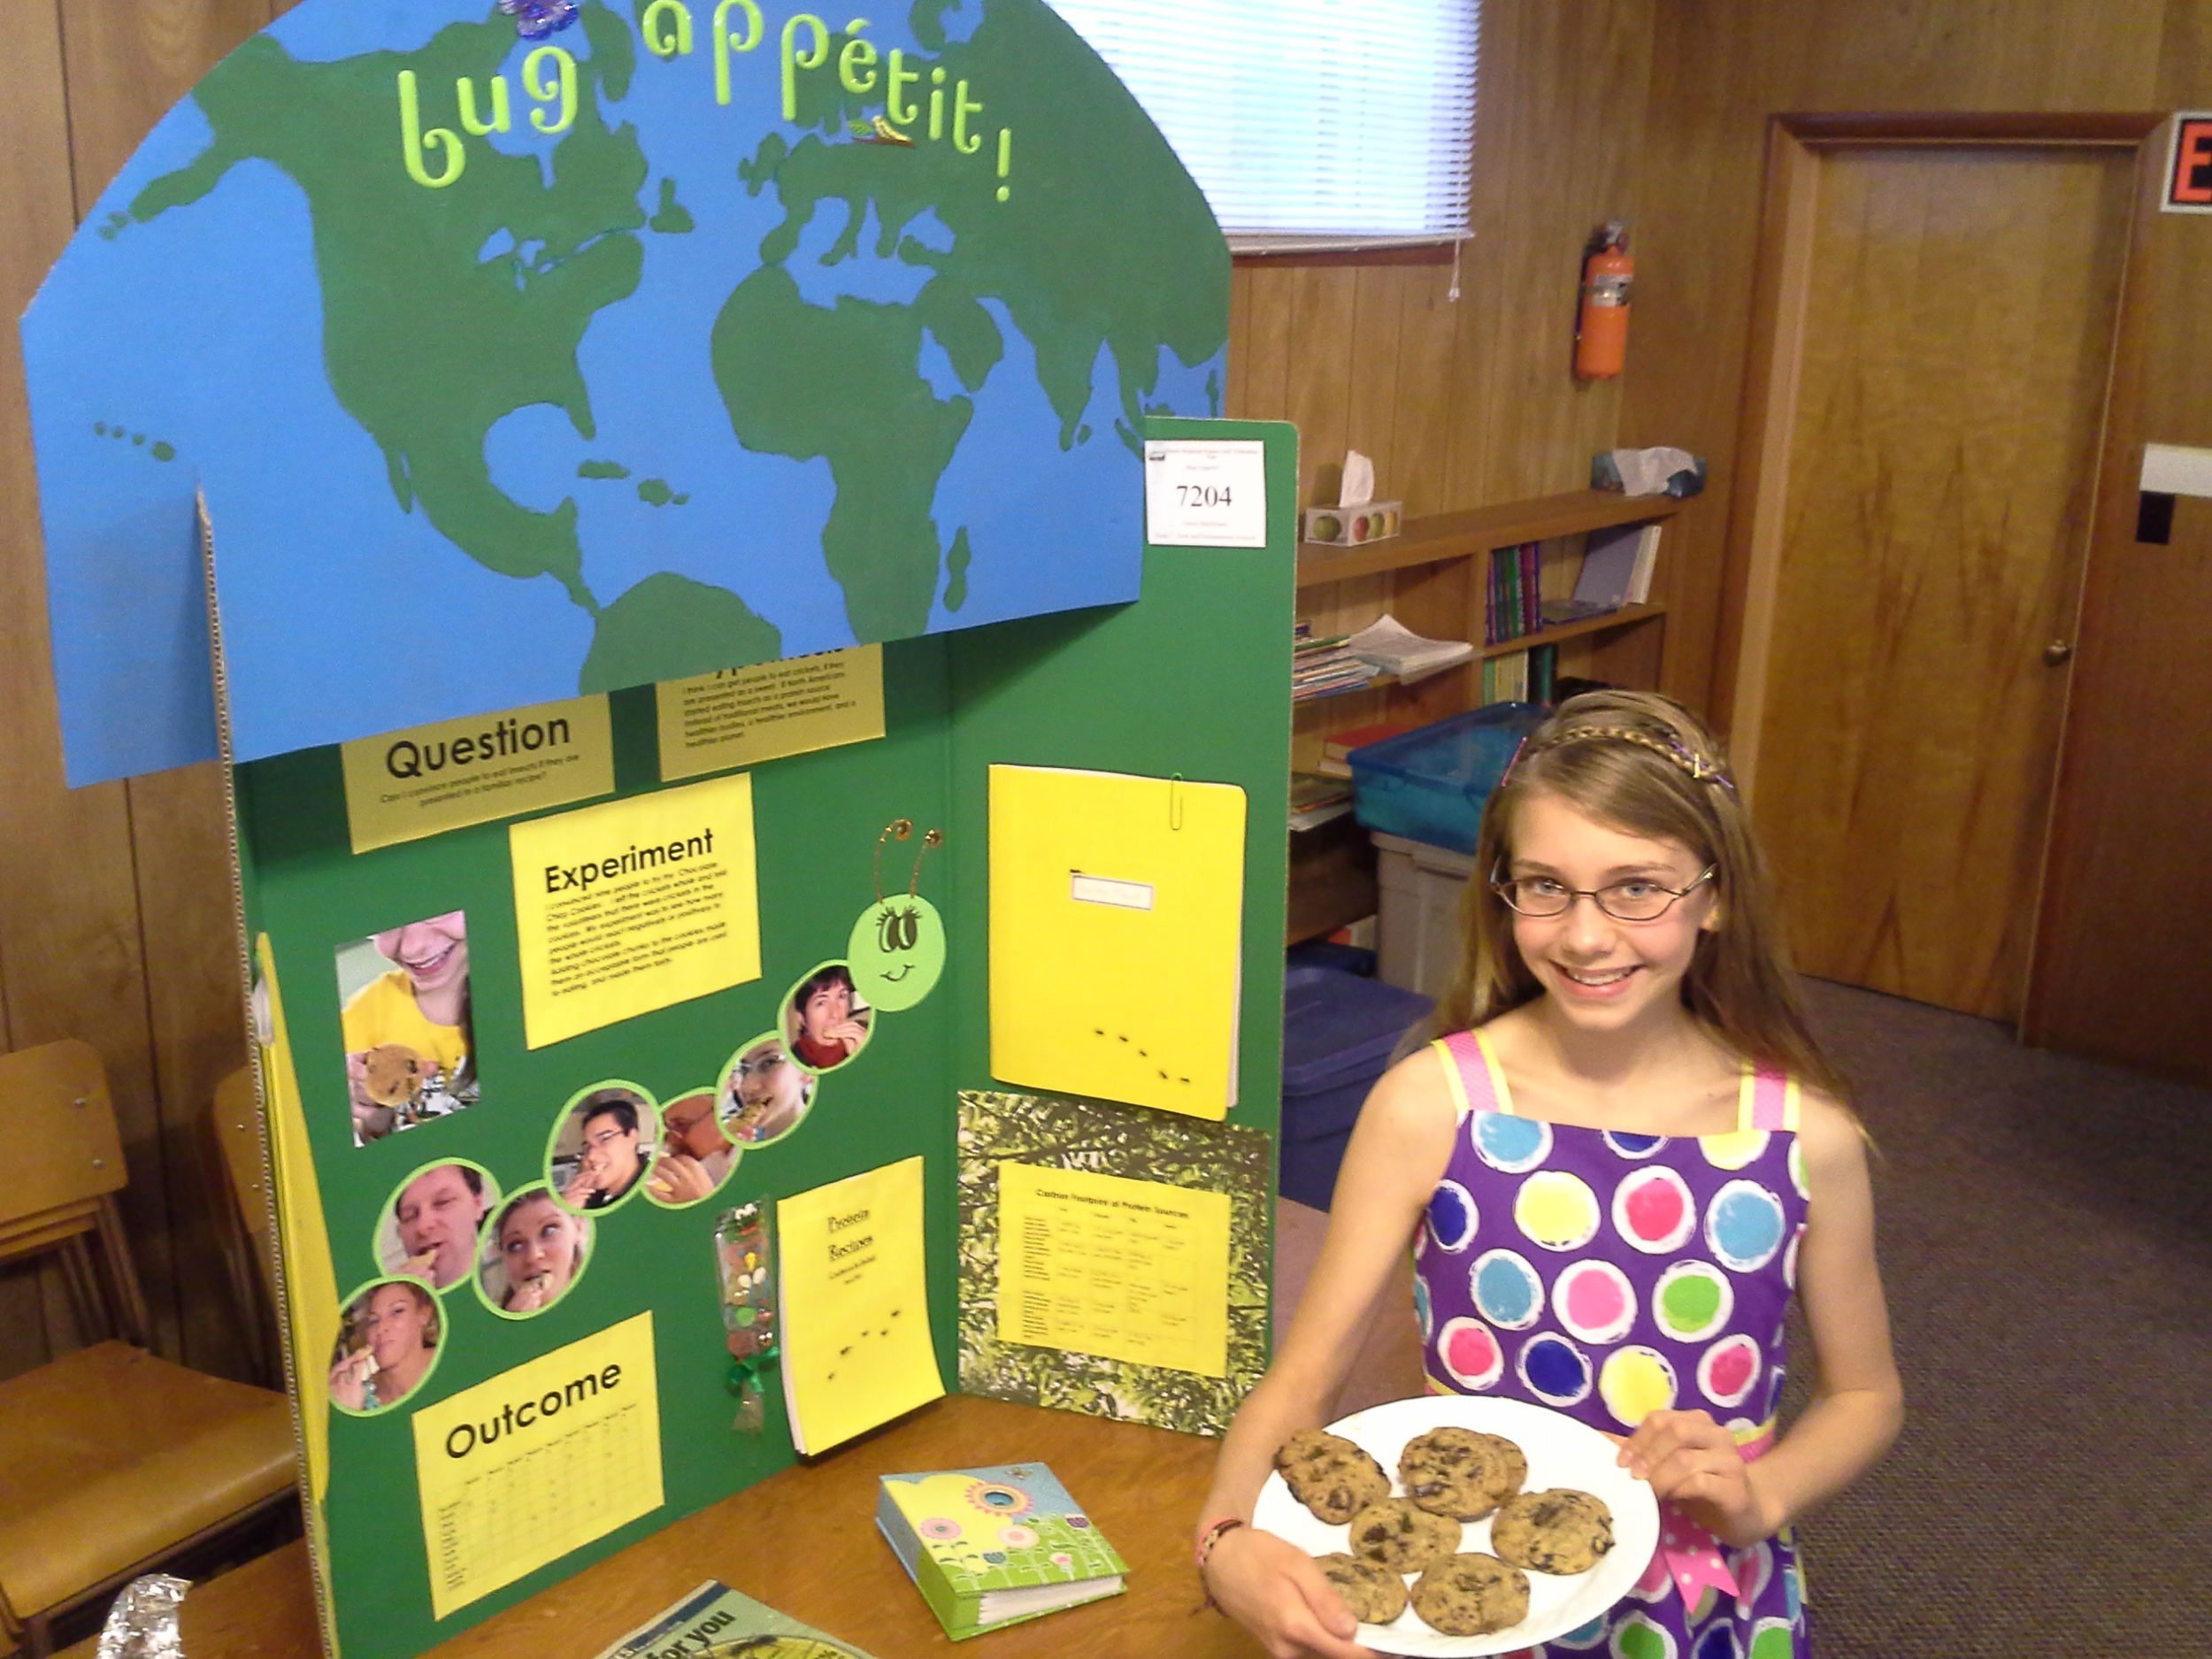 Liberty Macdonald - Bug Appetit. Liberty was a winner at the Quinte Region science fair. How eating bugs can lower our environmental footprint instead of traditional protein production. Council members were each given a delicious cookie baked with crickets as an ingredient, baked by Liberty.